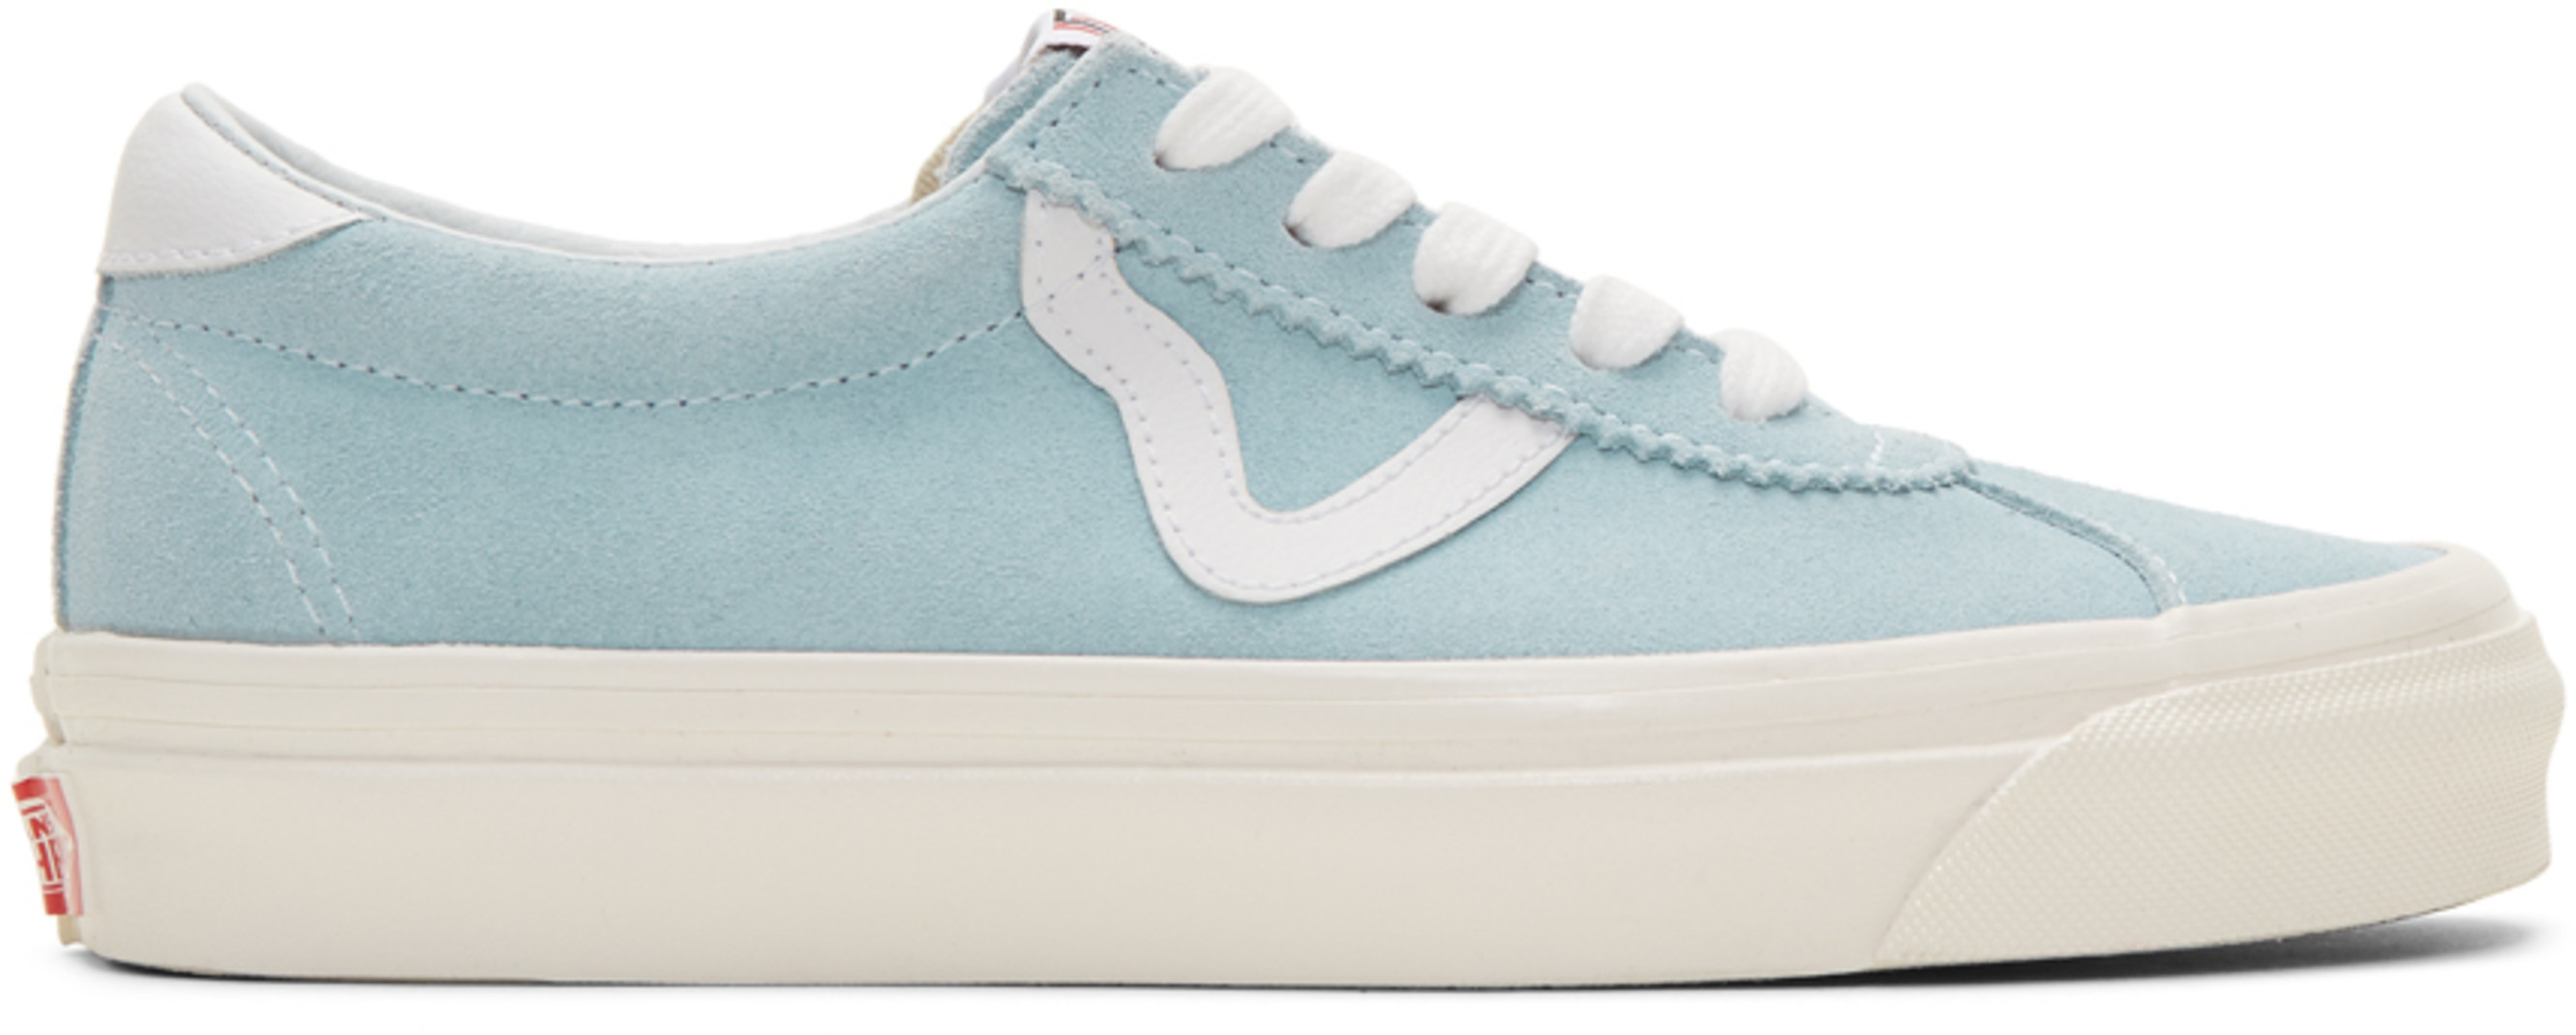 2916740faa19 Vans for Women SS19 Collection